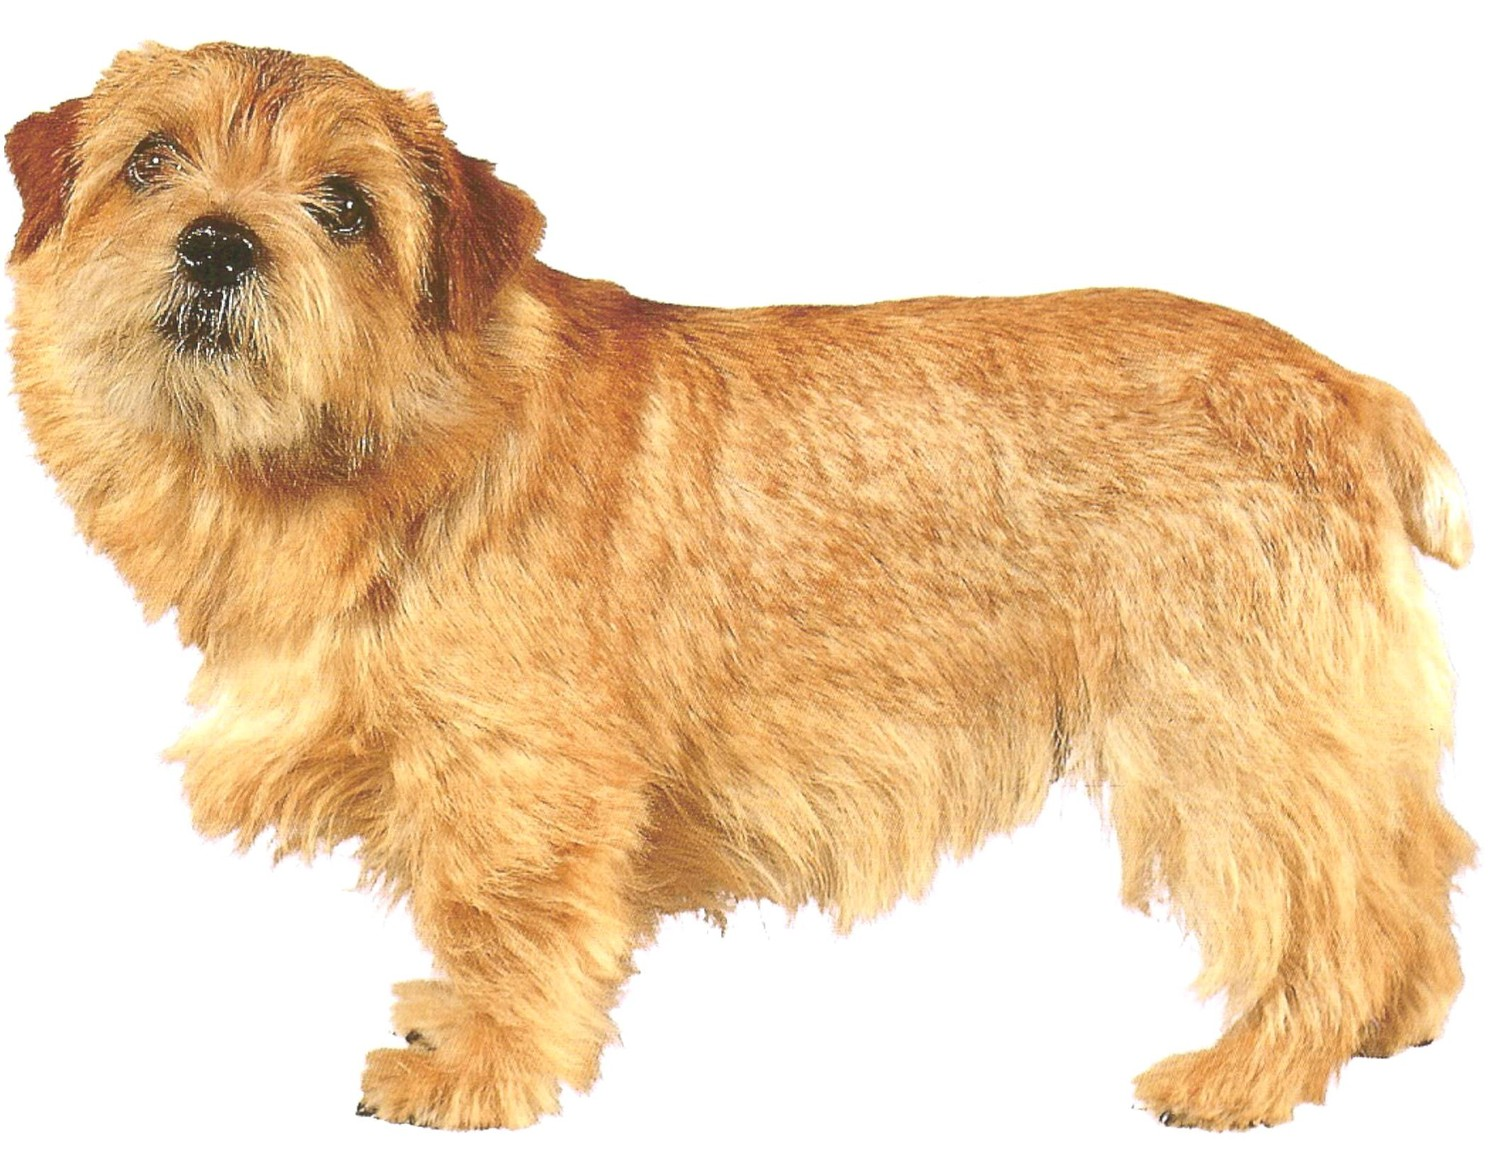 Norfolk Terrier dog portrait wallpaper